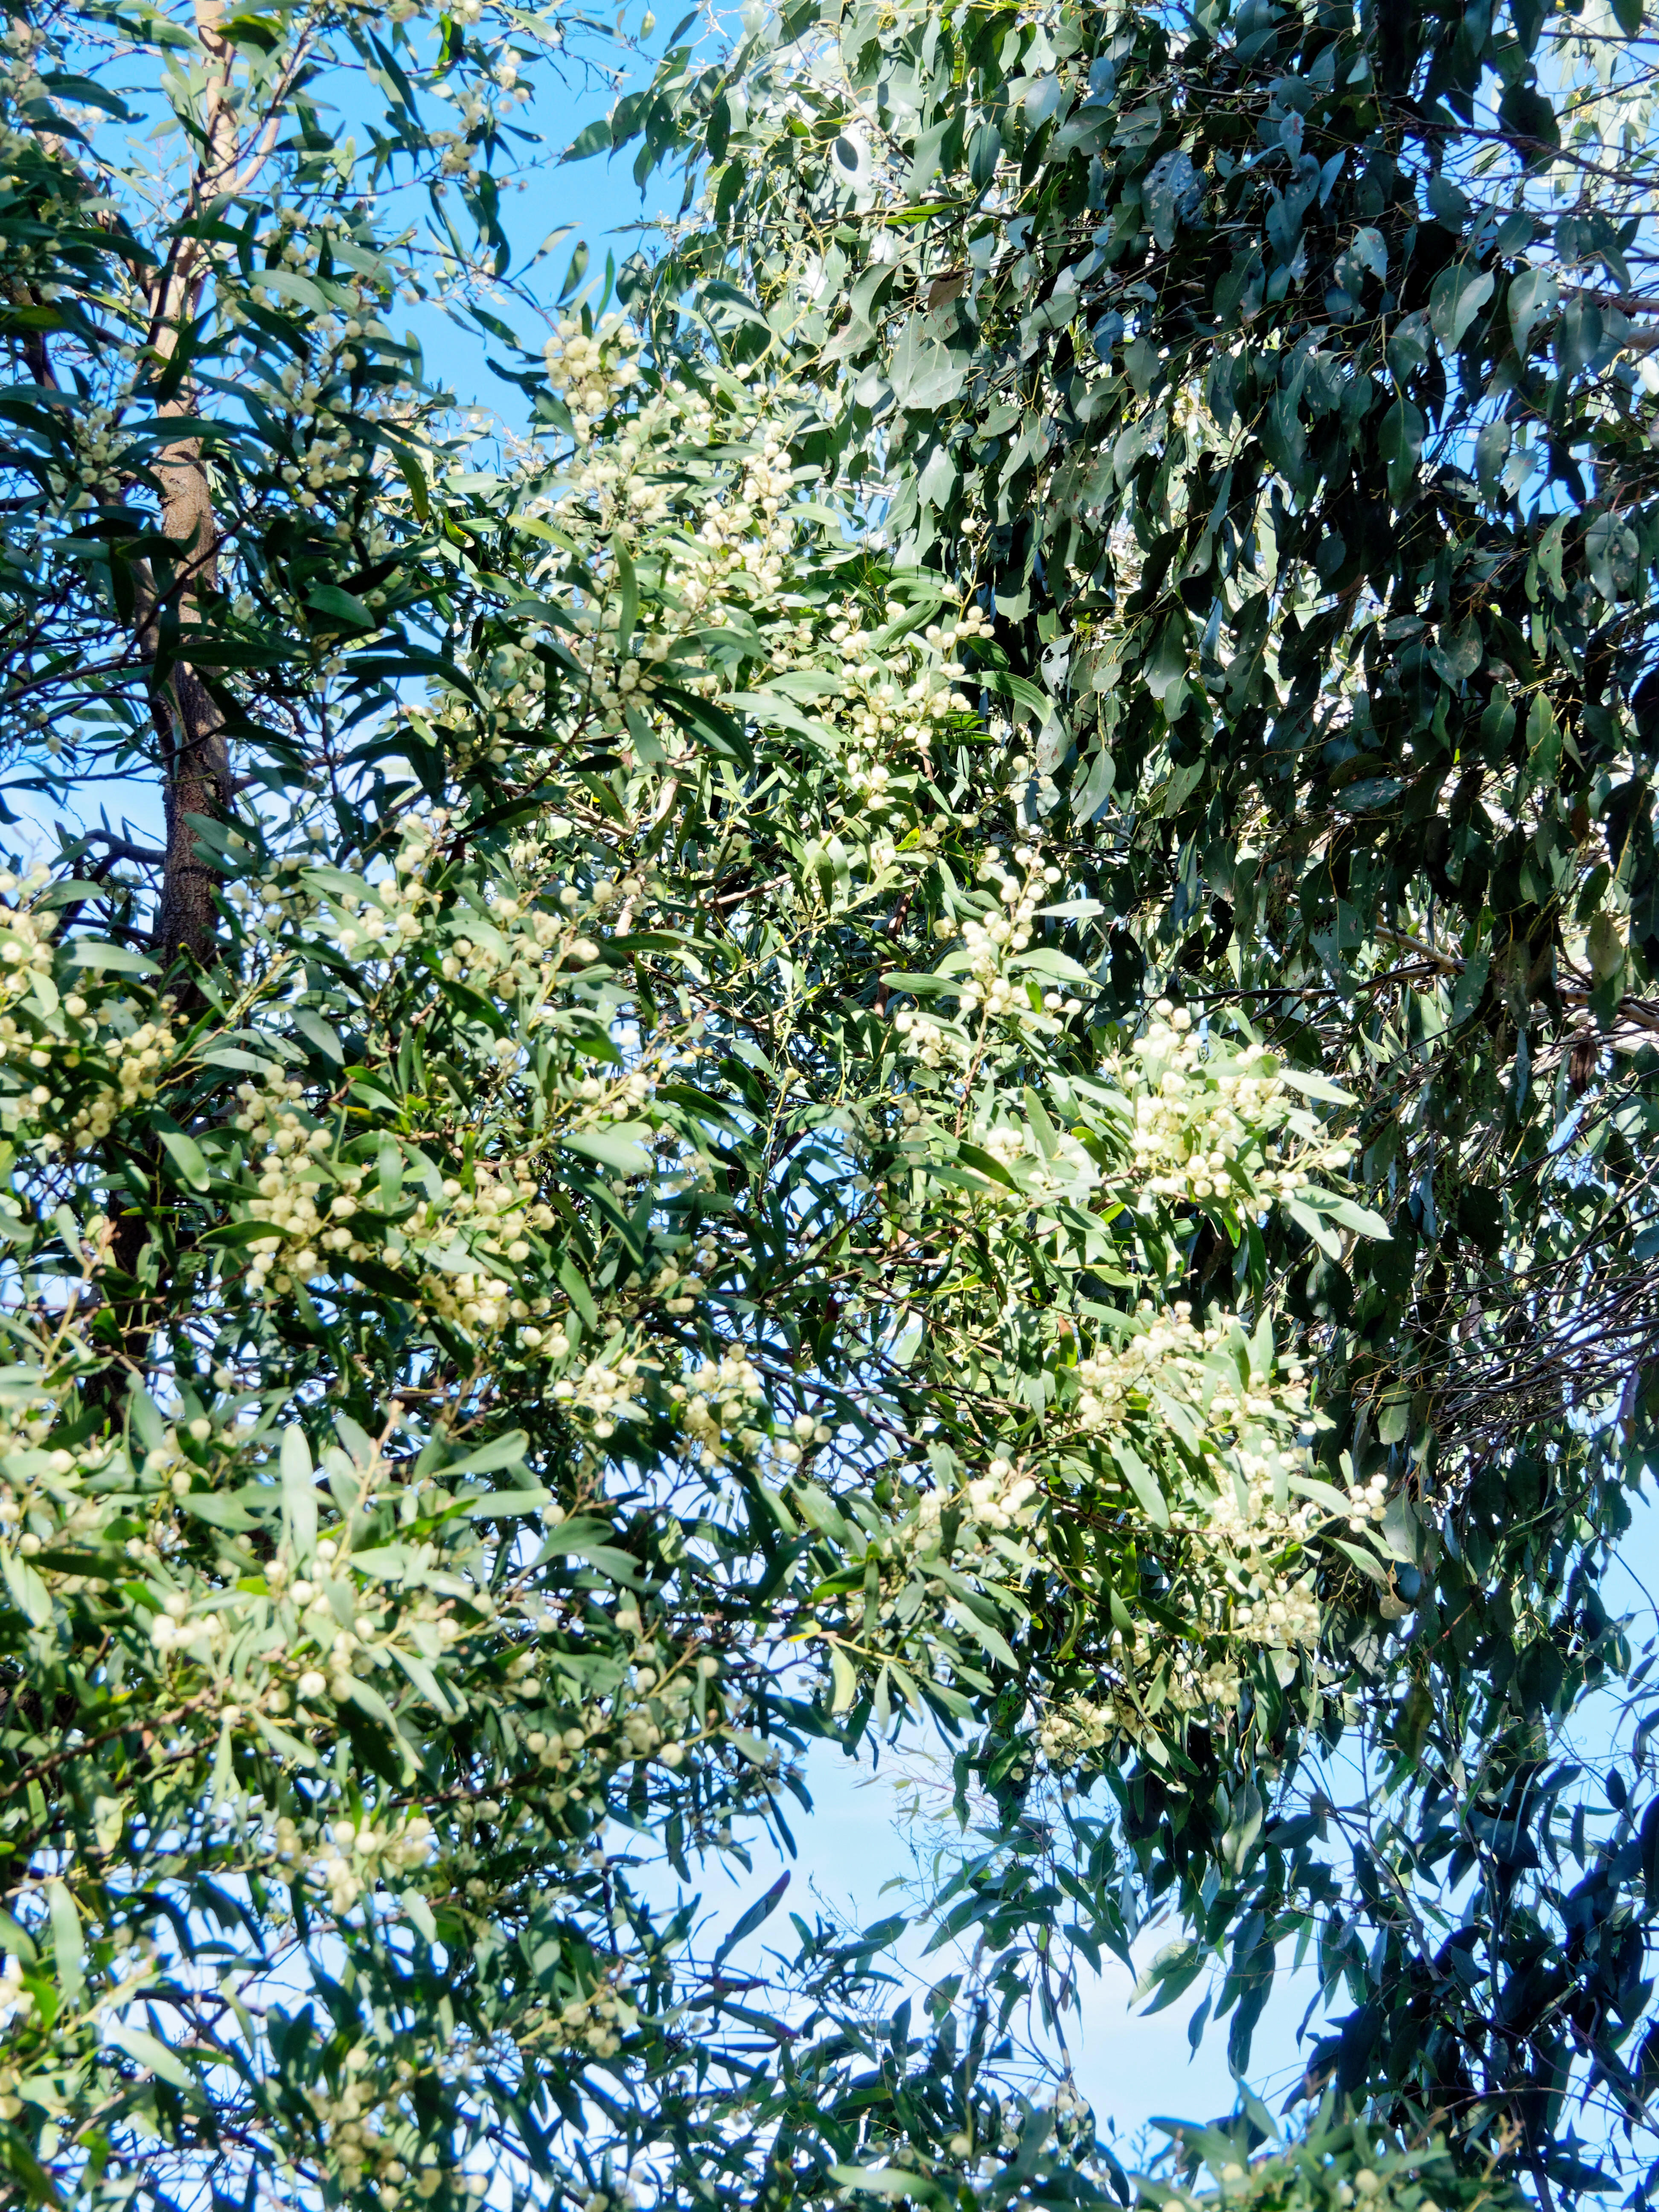 This should be Flowering-eucalypt-2.jpeg.  Is it missing?